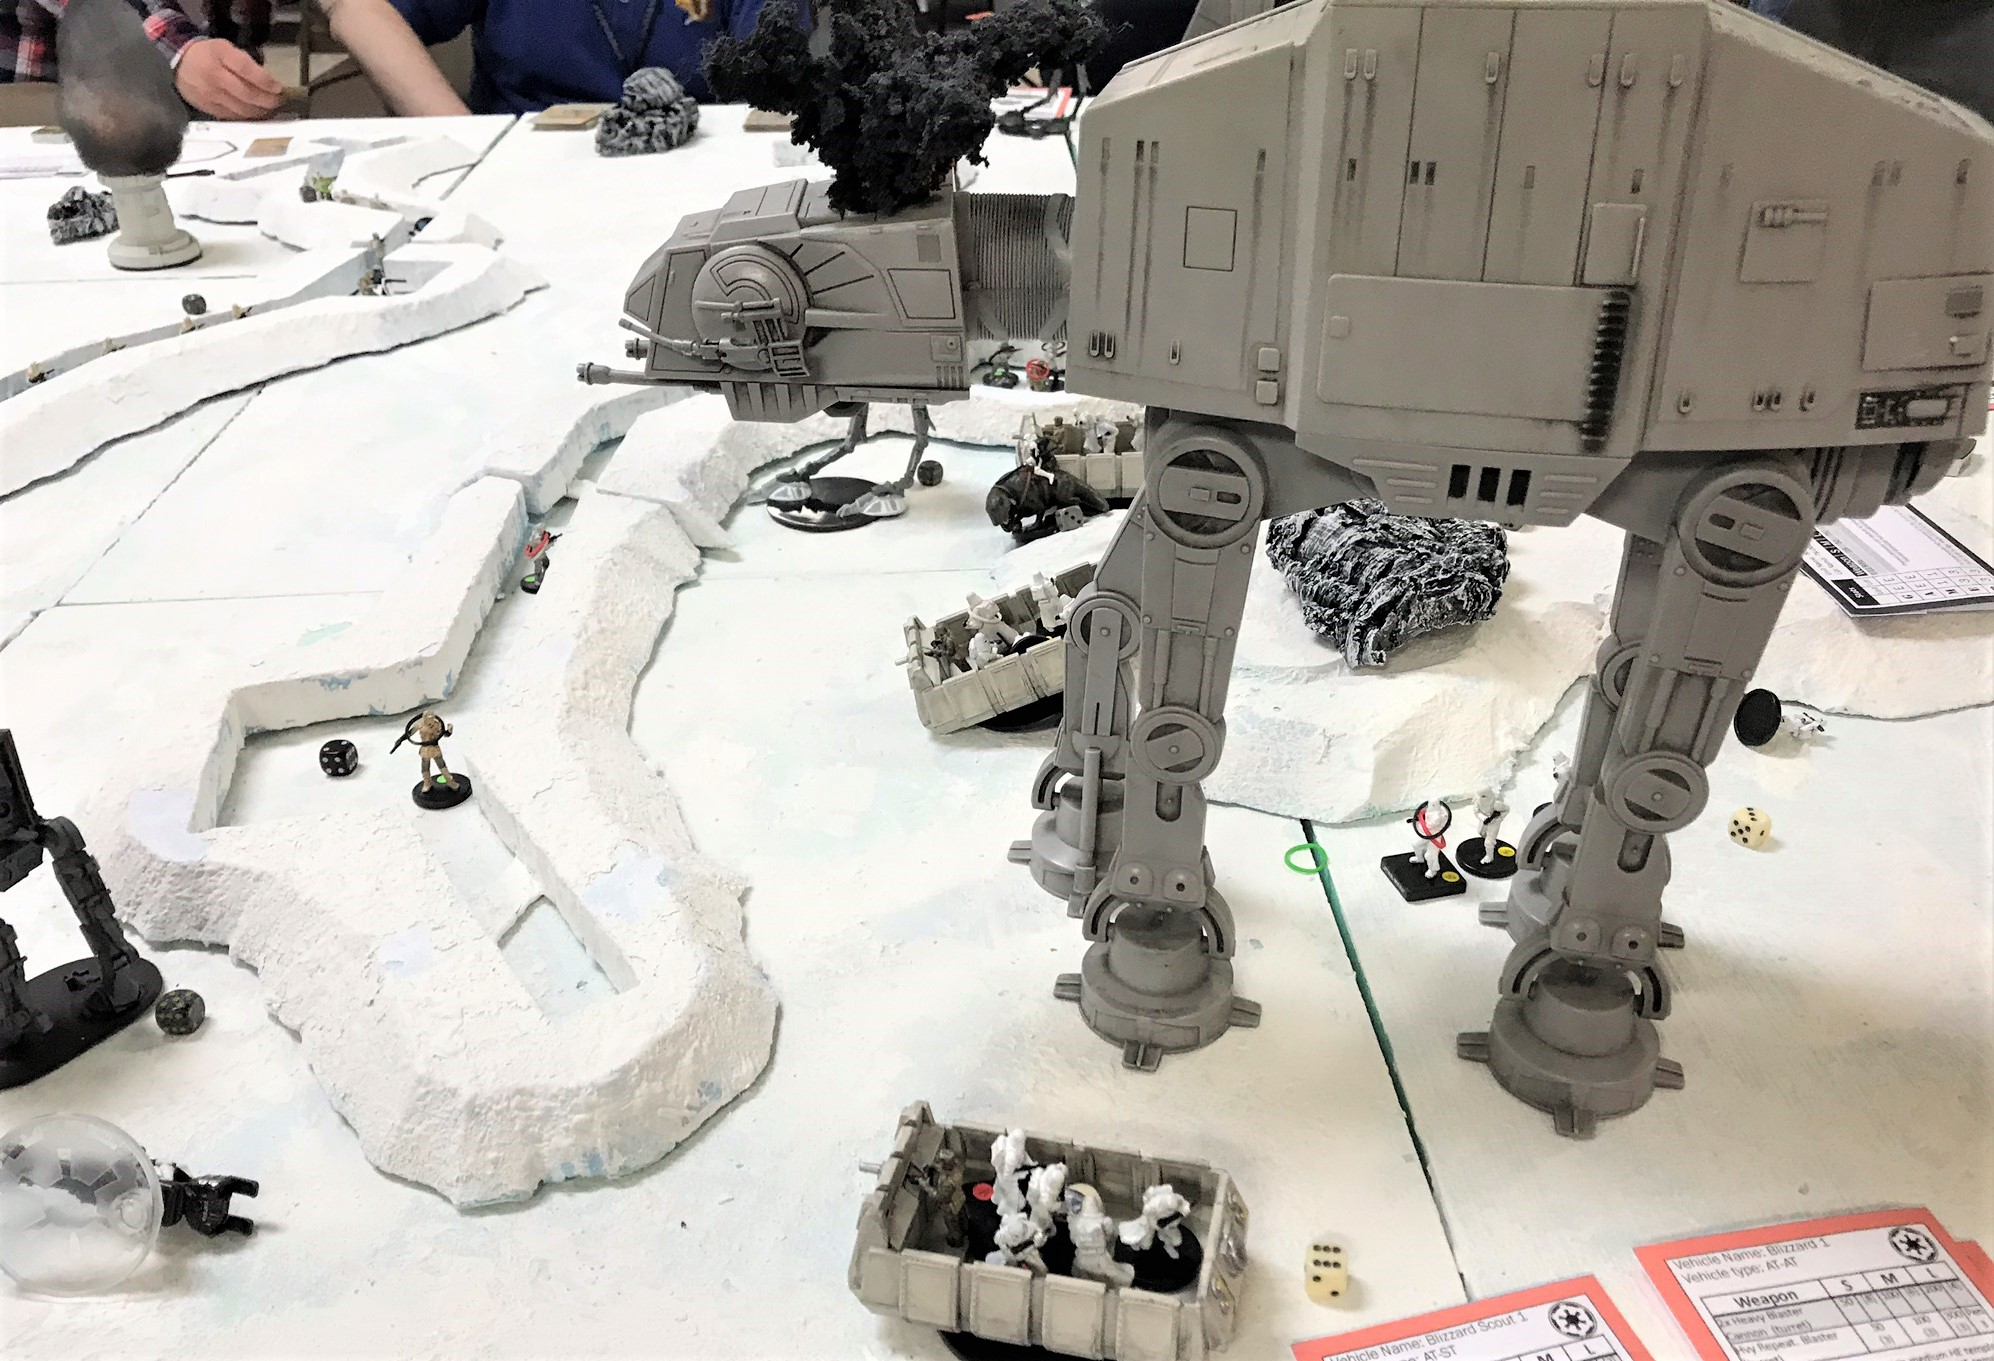 34 Battle of Hoth Inf carriers